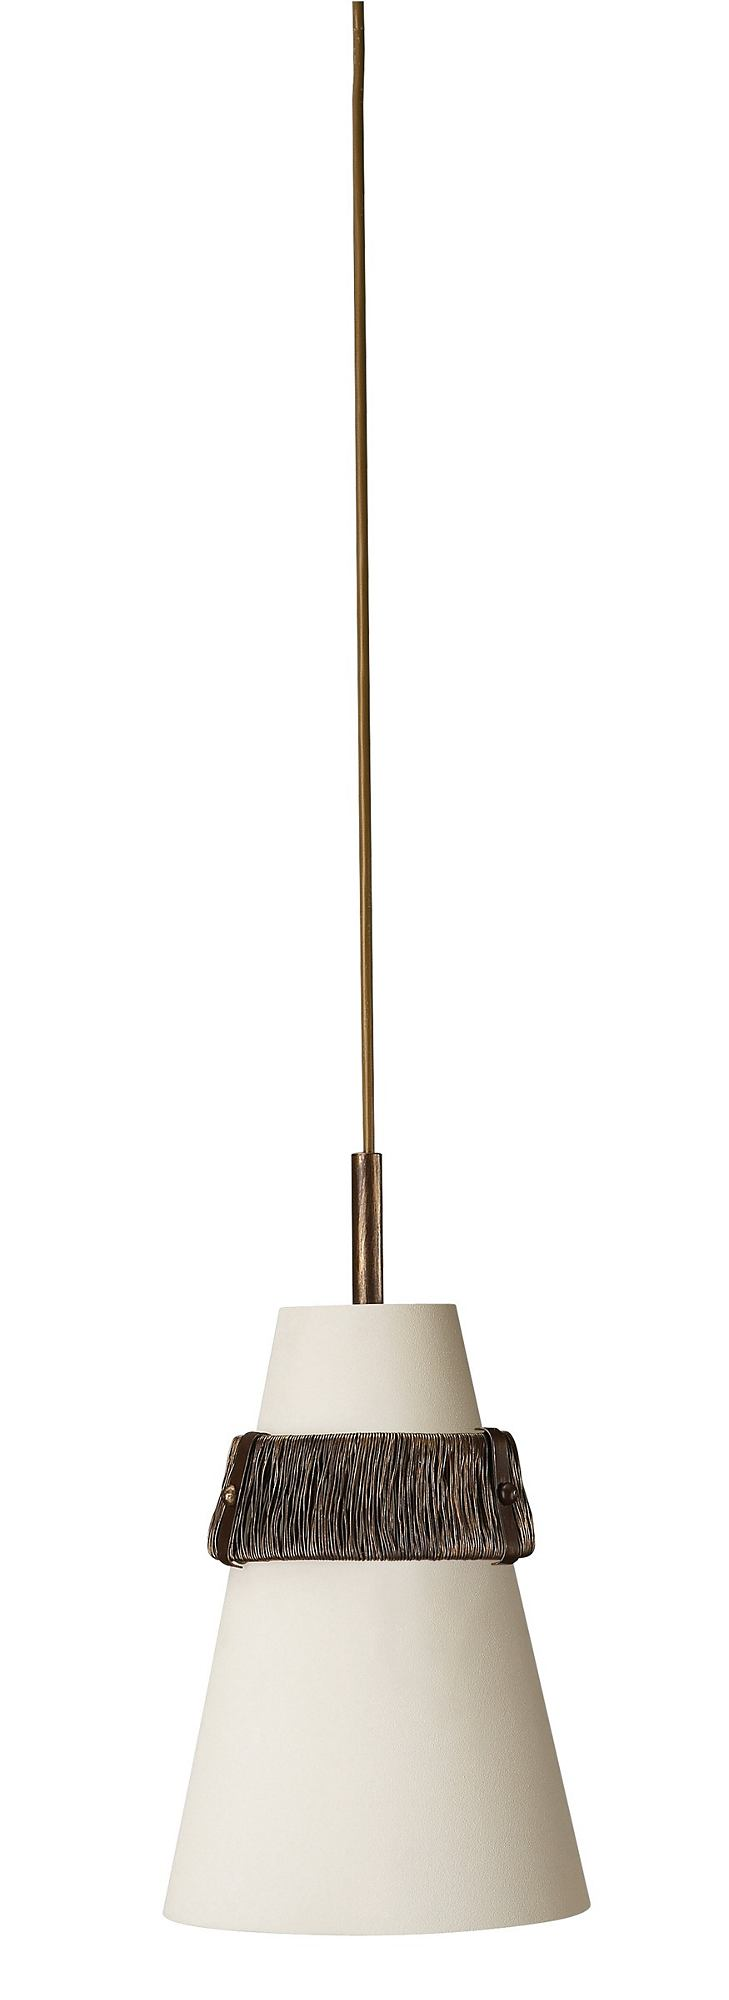 - Roomstylers - 37180 Rust Classic pendant